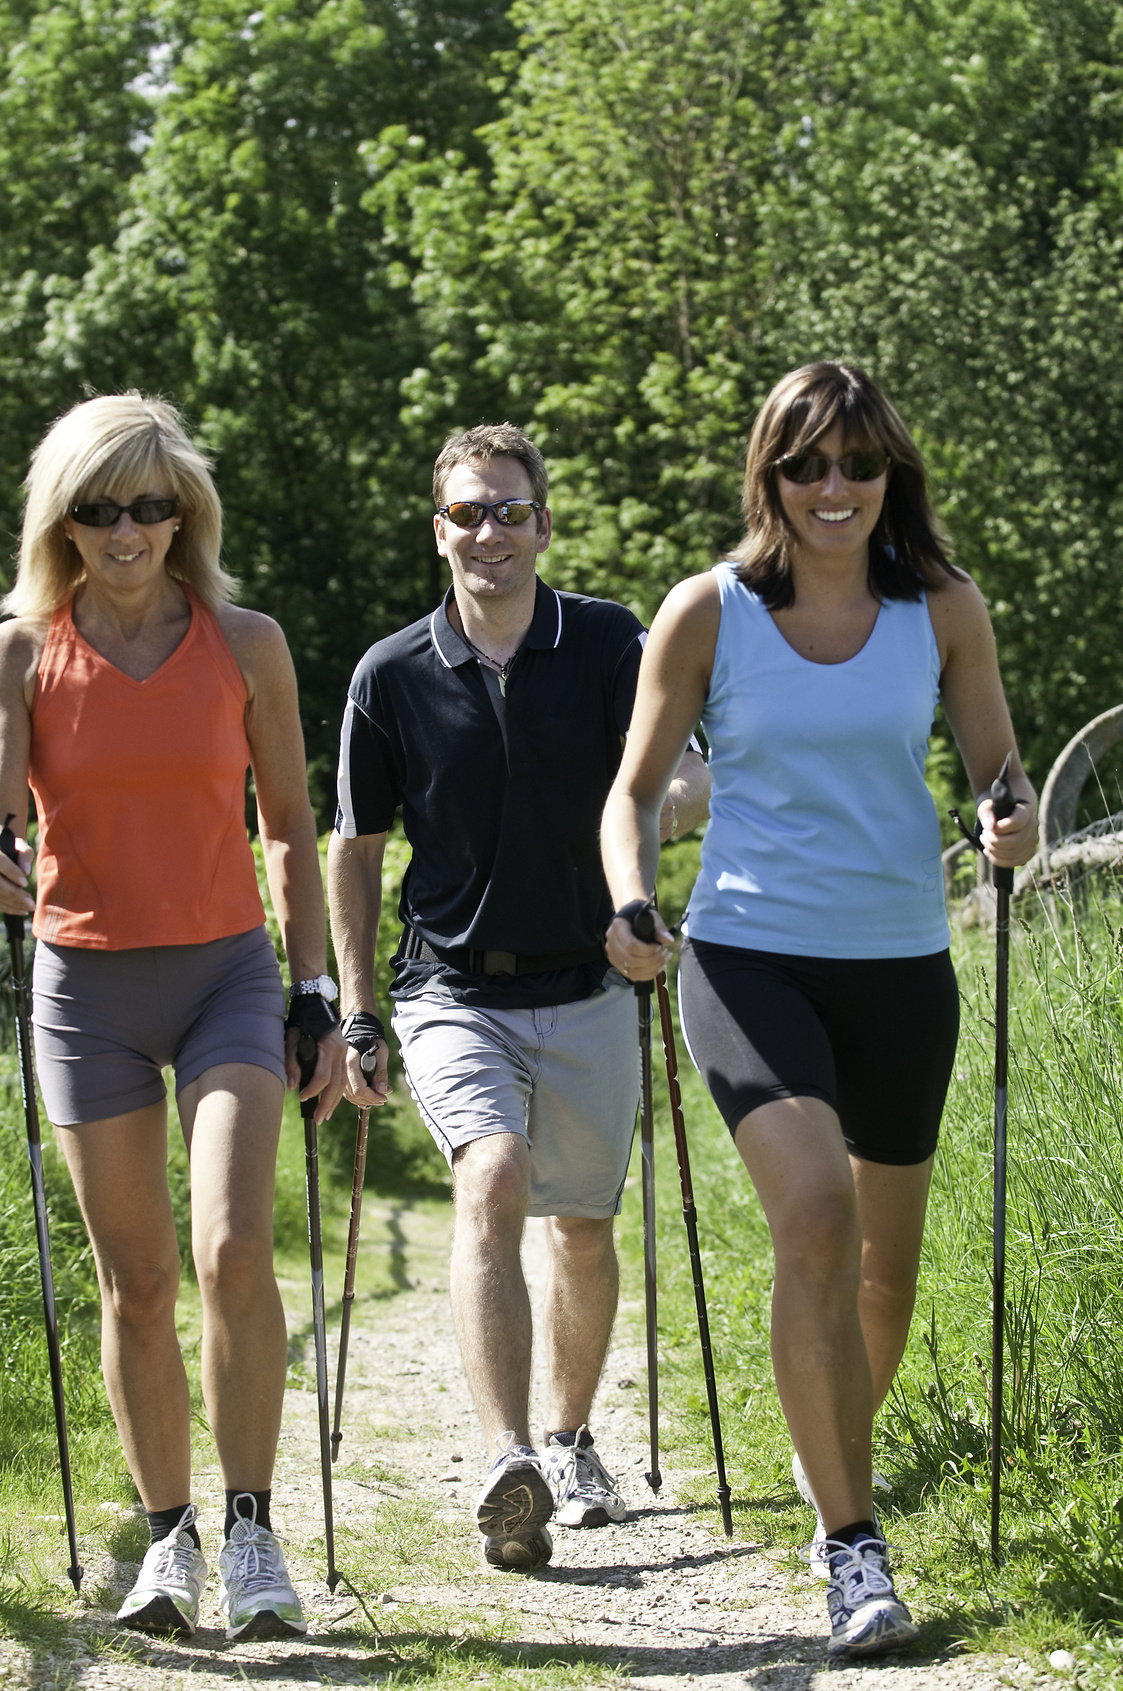 Mervyn S Foster INWA Nordic Walking Instructor